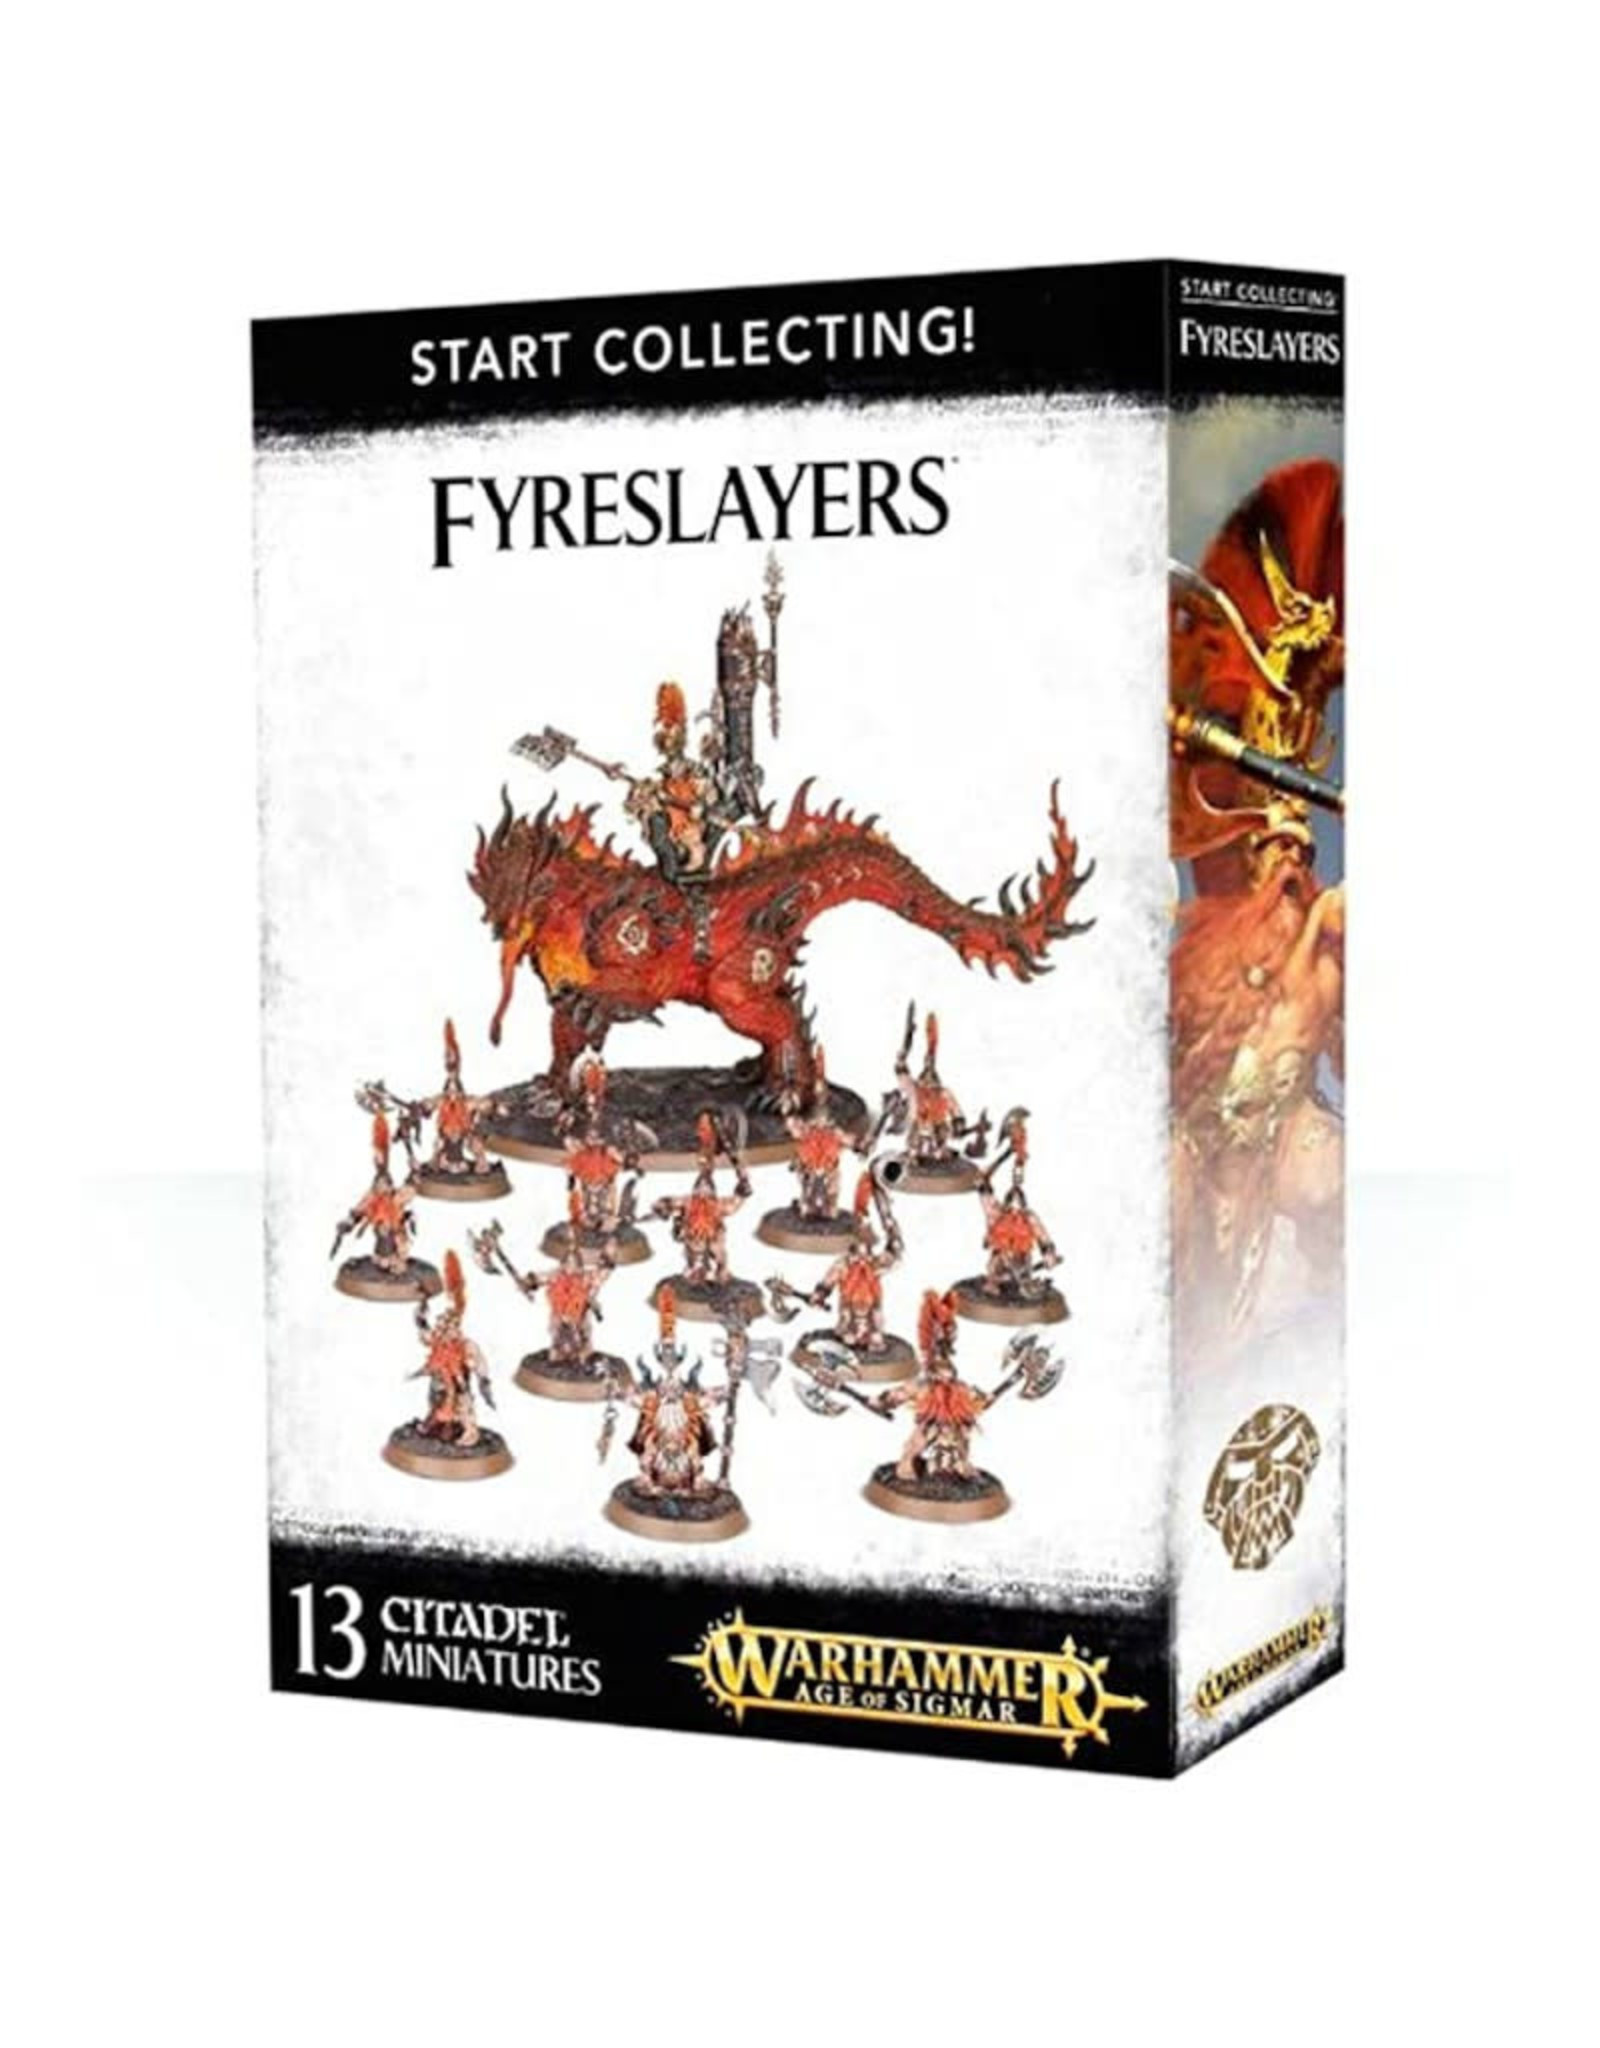 Games Workshop Warhammer Age Of Sigmar Start Collecting Fyreslayers